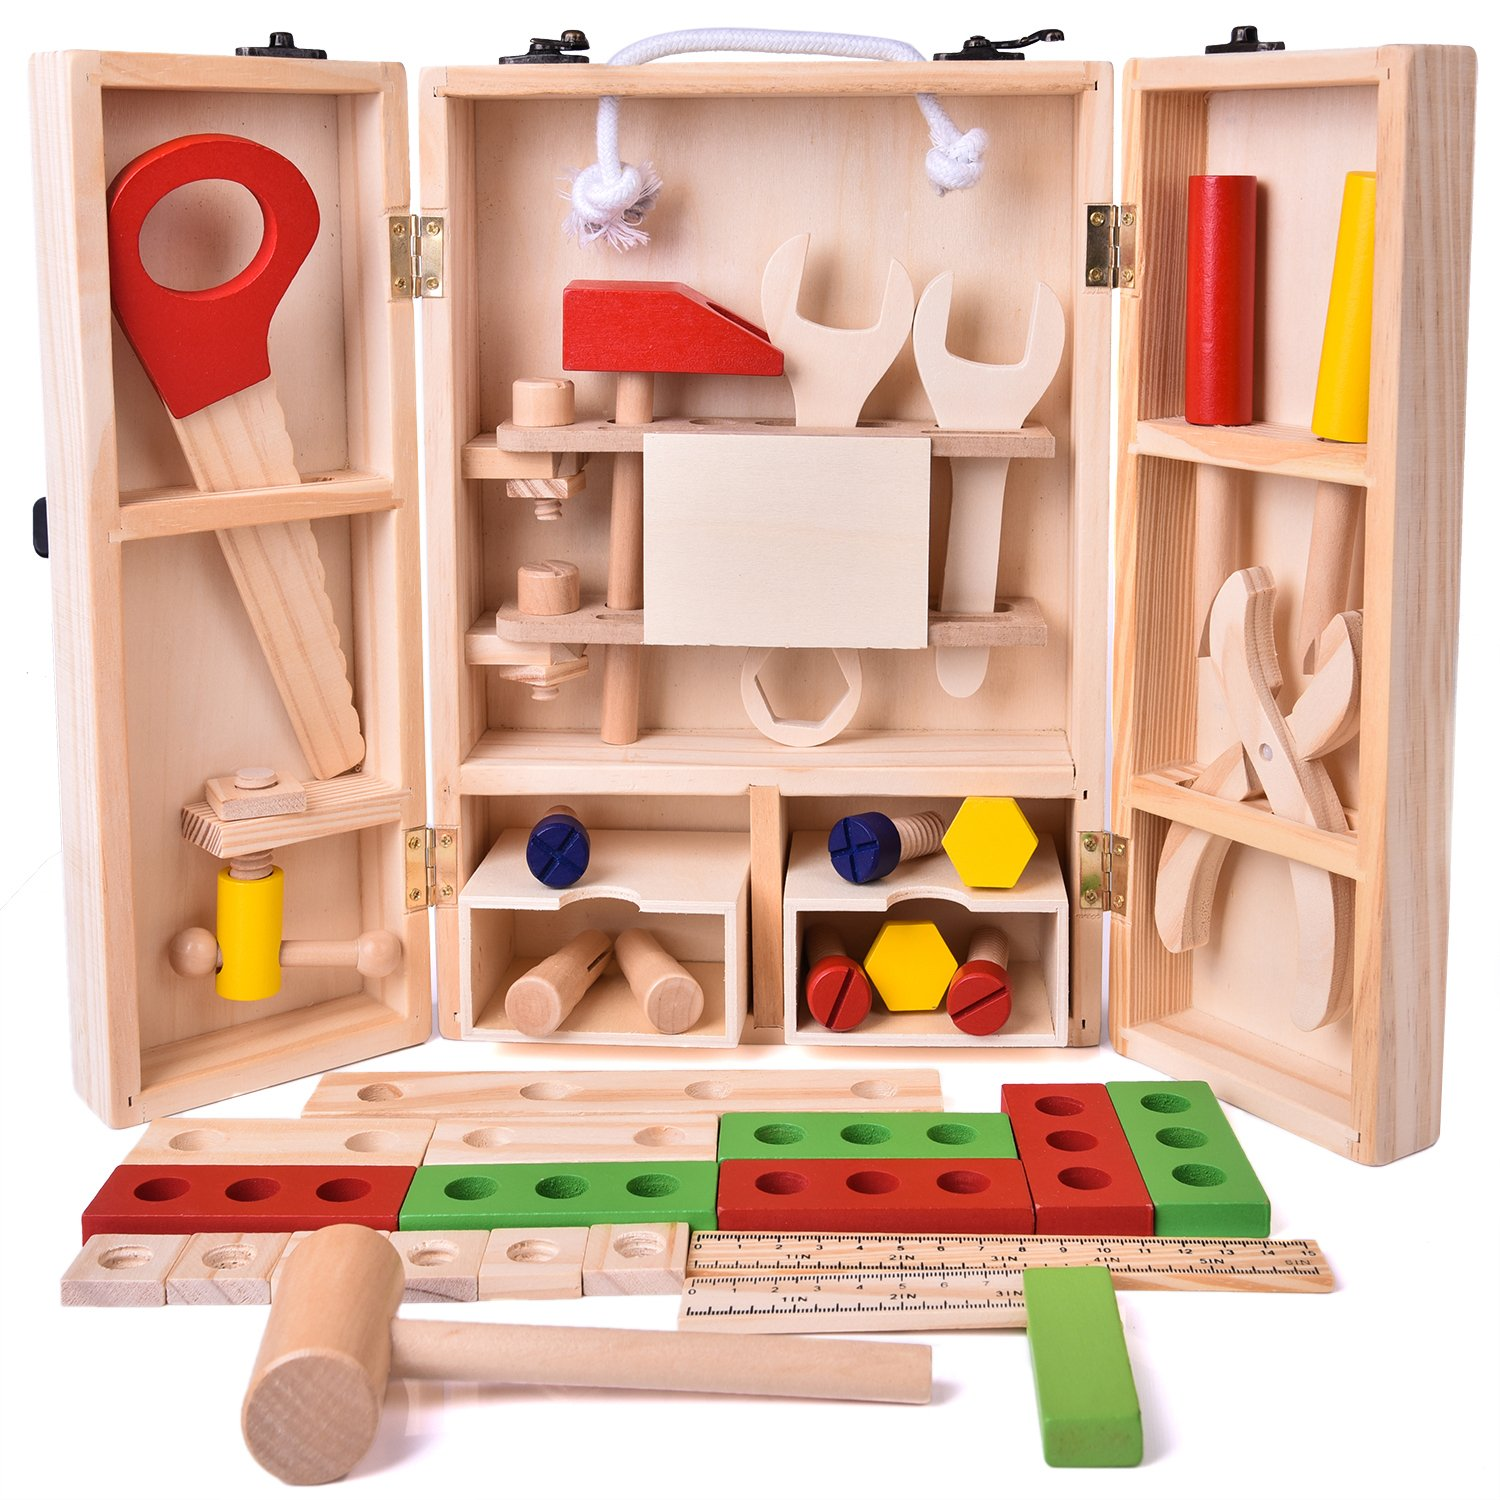 Fun Little Toys 43 PCs Wooden Tool Box Set, Kids Tool Kits, Boy Gift Learning Toy Construction Set Pretend Playset